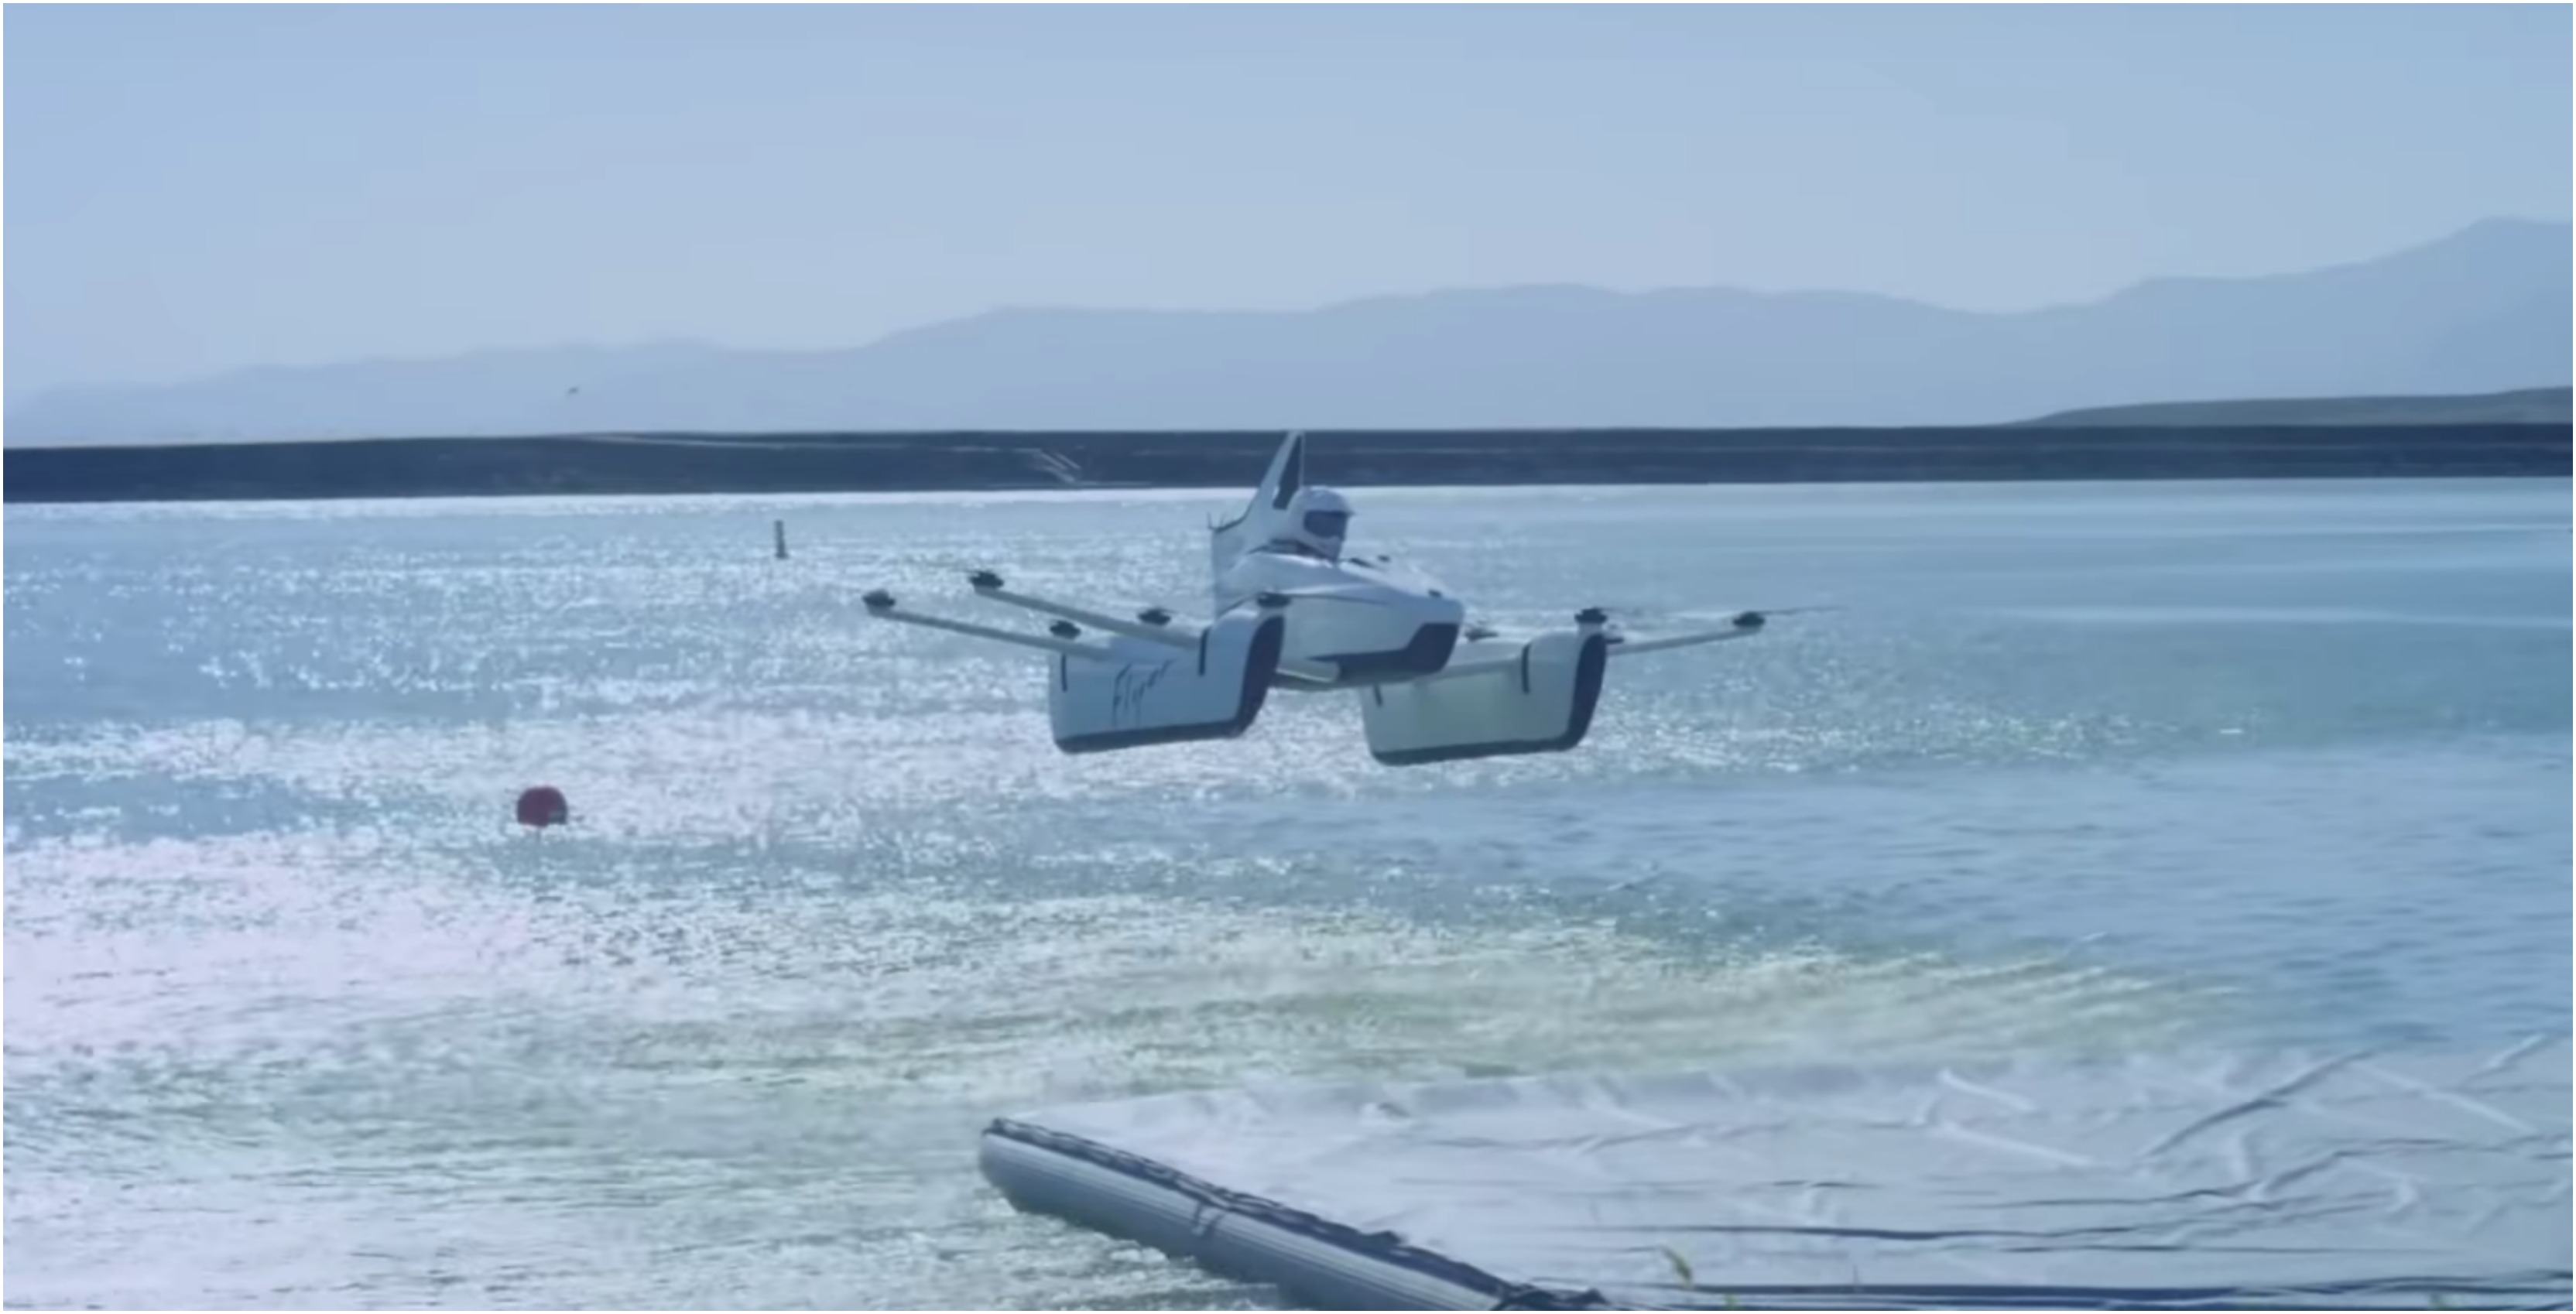 Kitty Hawk's 'Flyer' is an aircraft that takes 15 minutes to learn how to fly